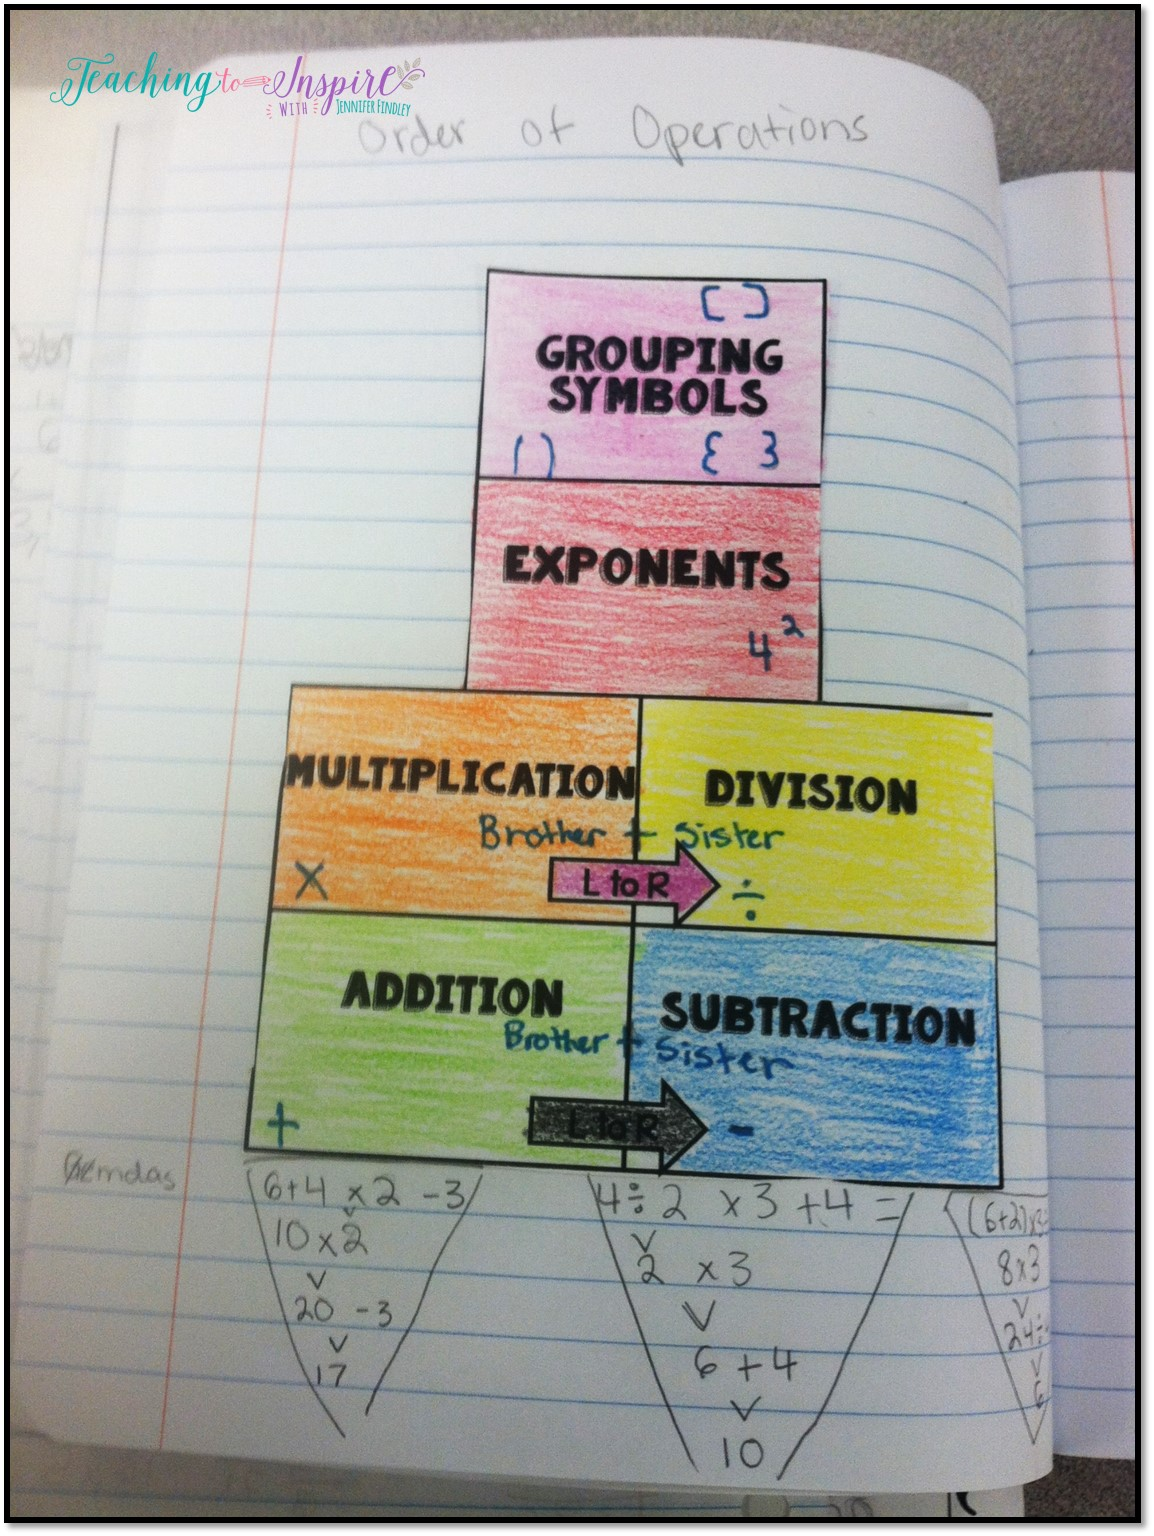 worksheet Order Of Operations 5th Grade teaching order of operations free inb template to note there is a student error on one the examples shown above this great example how interactive notebooks can be used